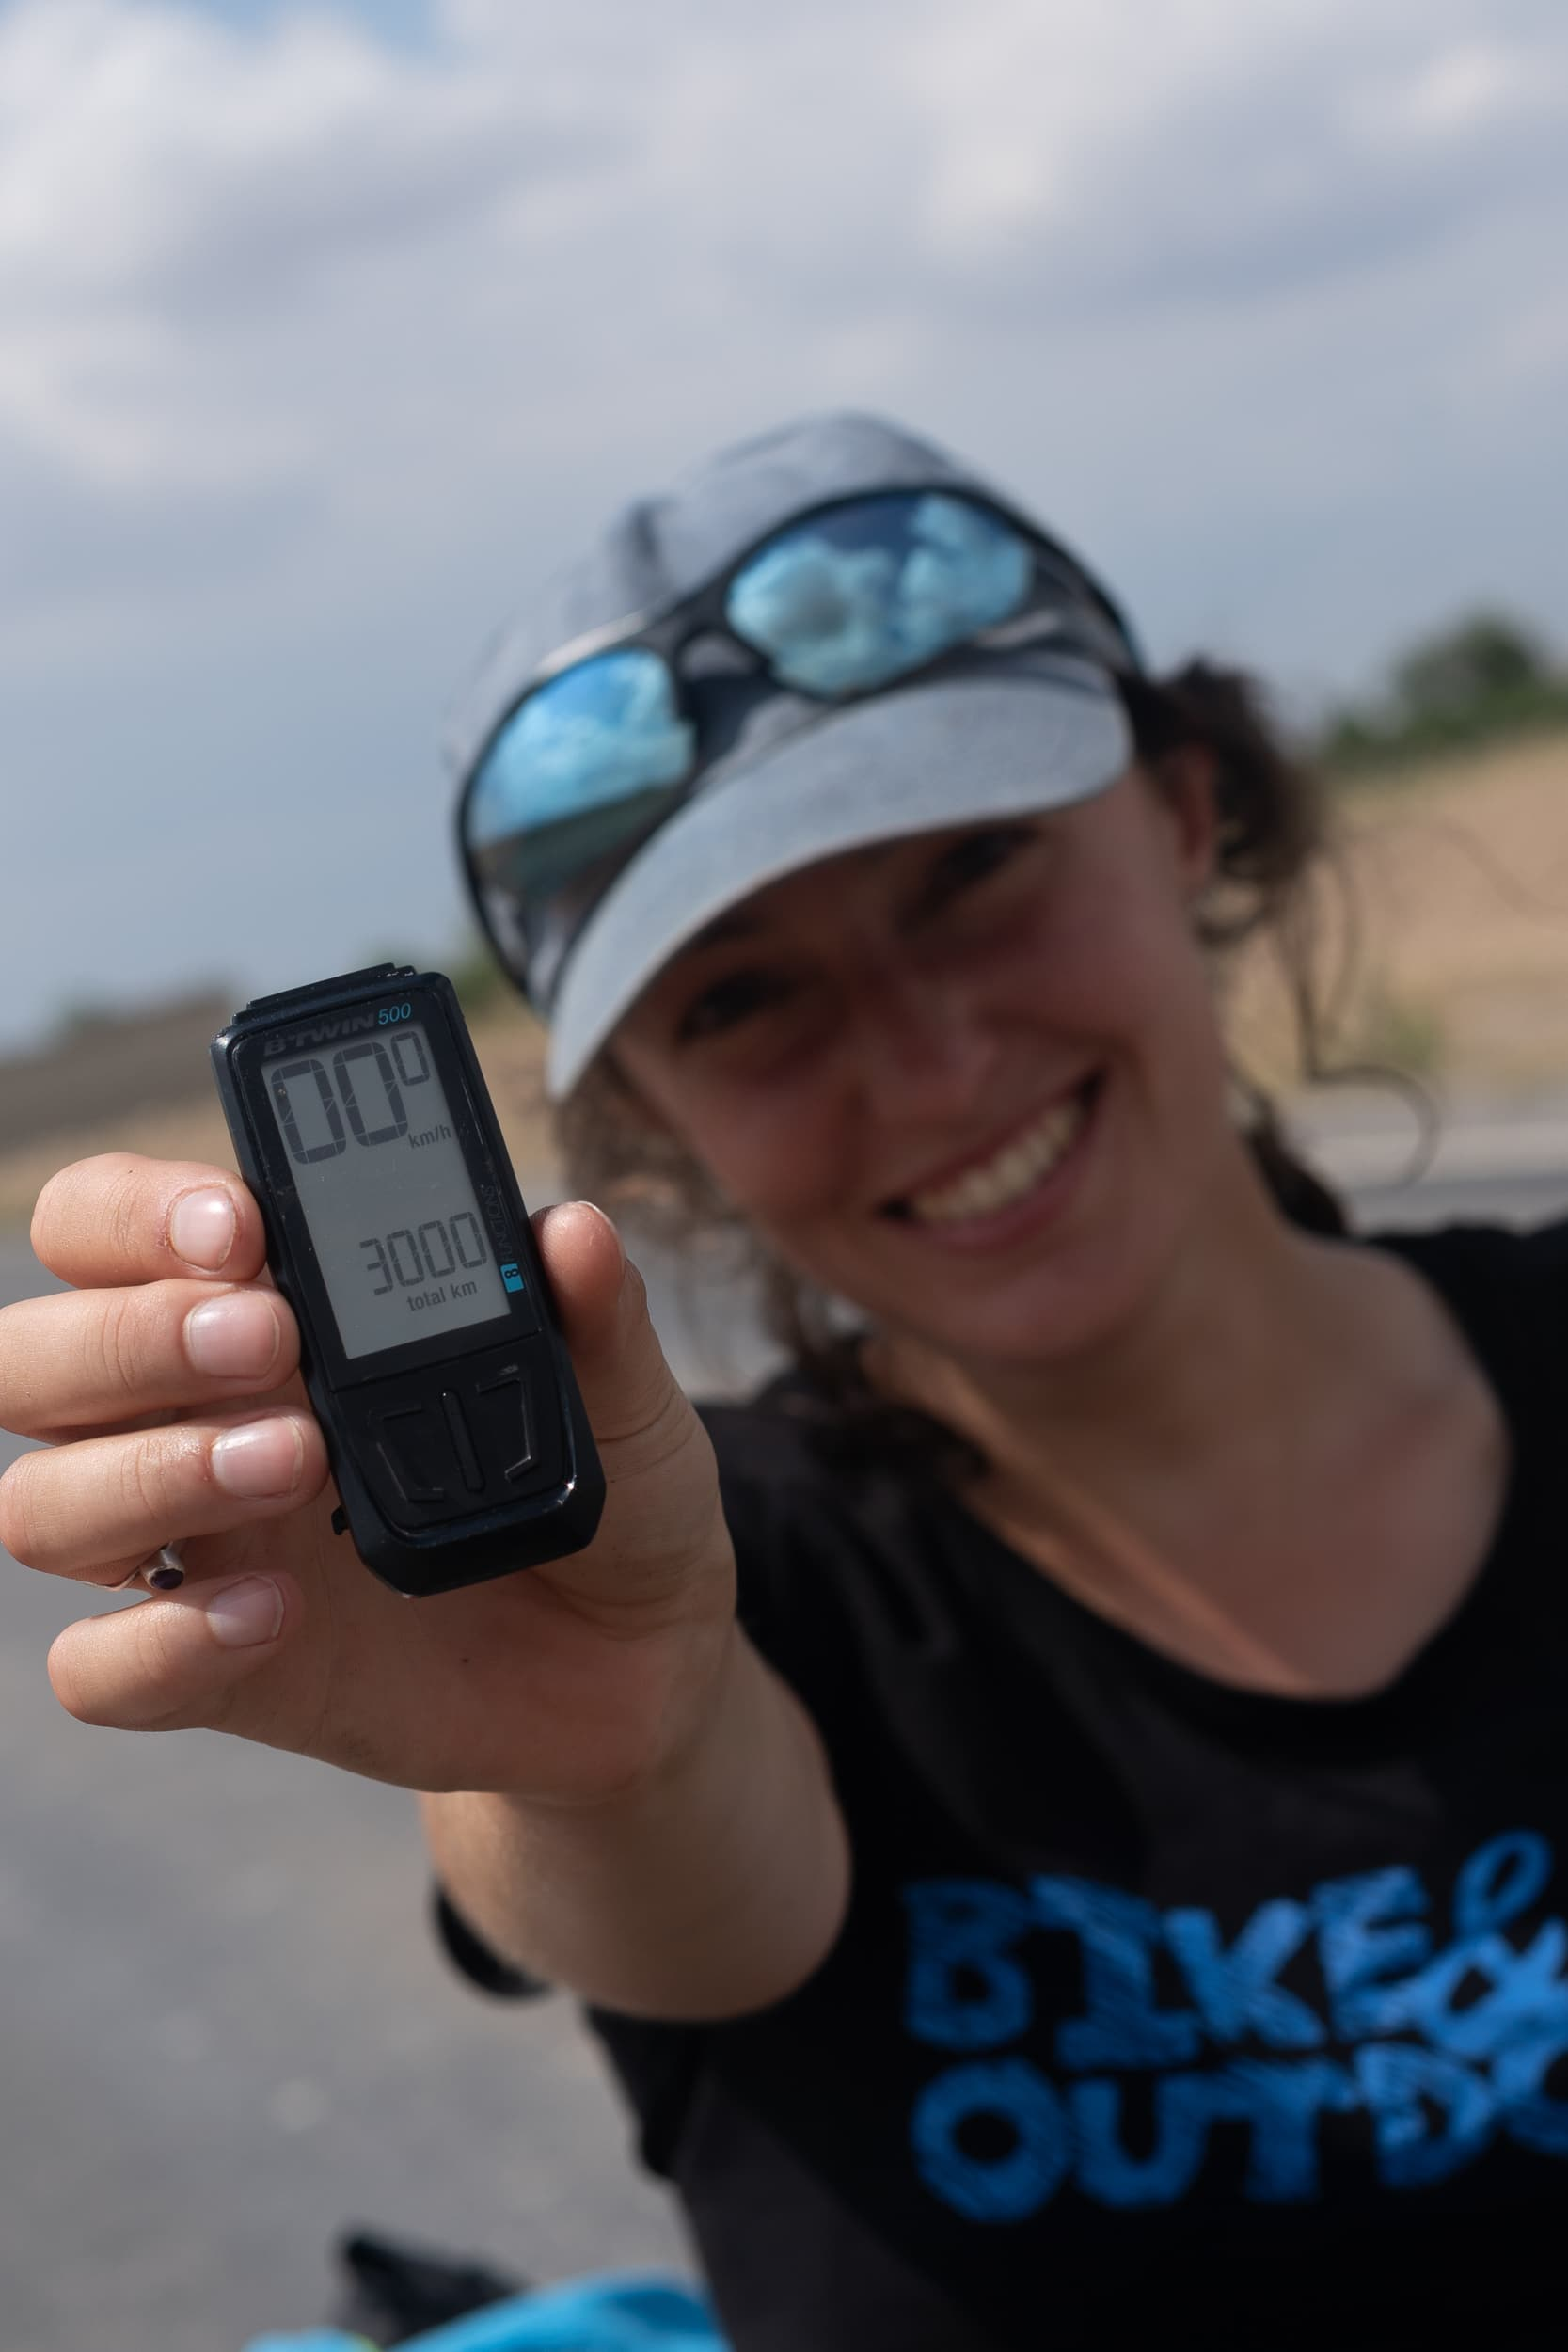 3000km's cycled in turkey